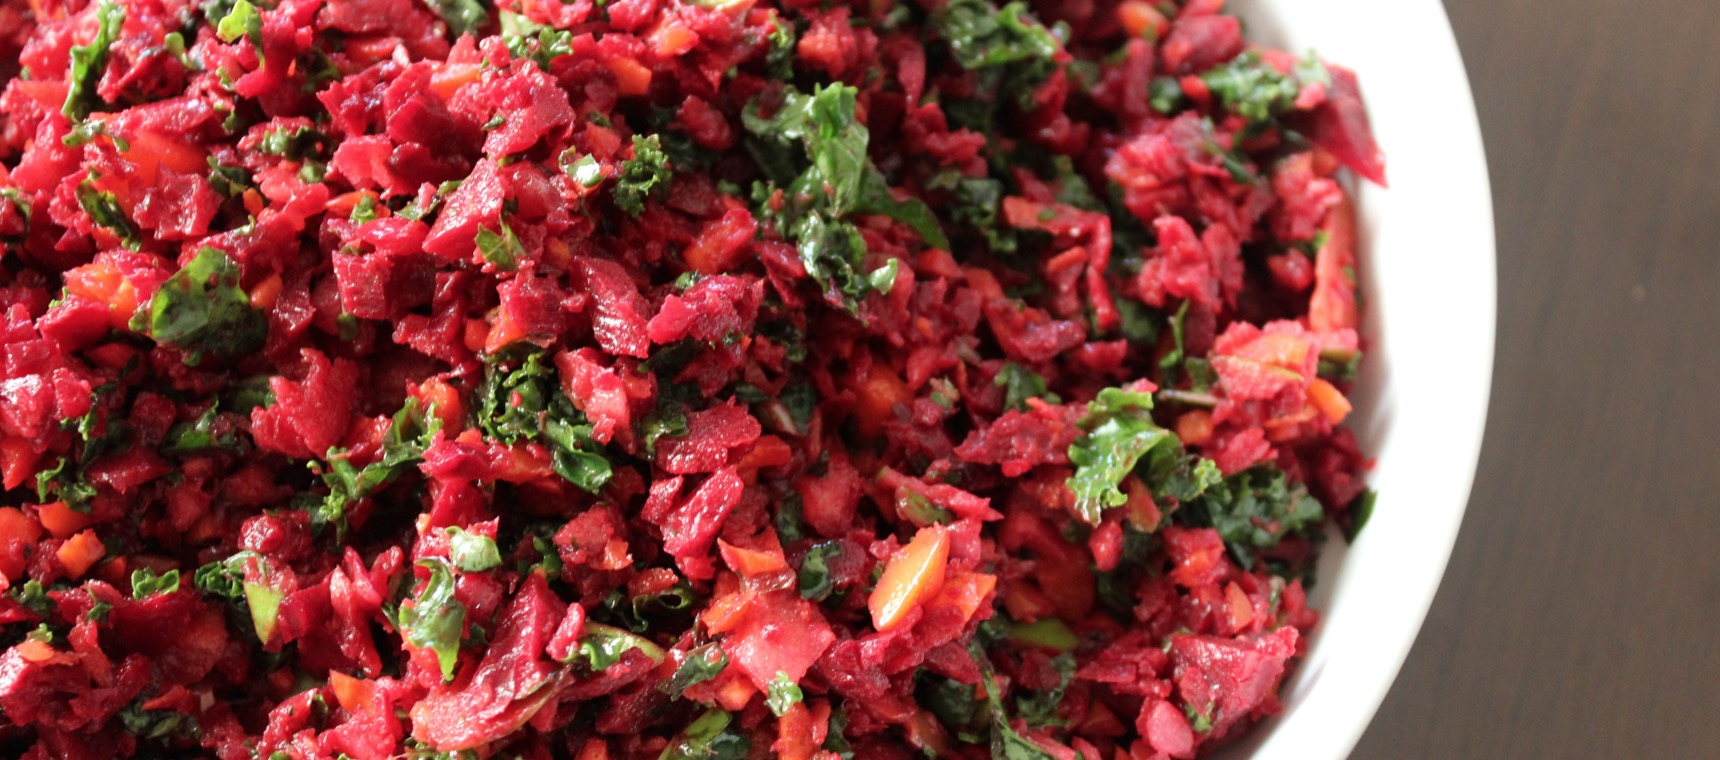 Beetroot and Kale Chopped Salad